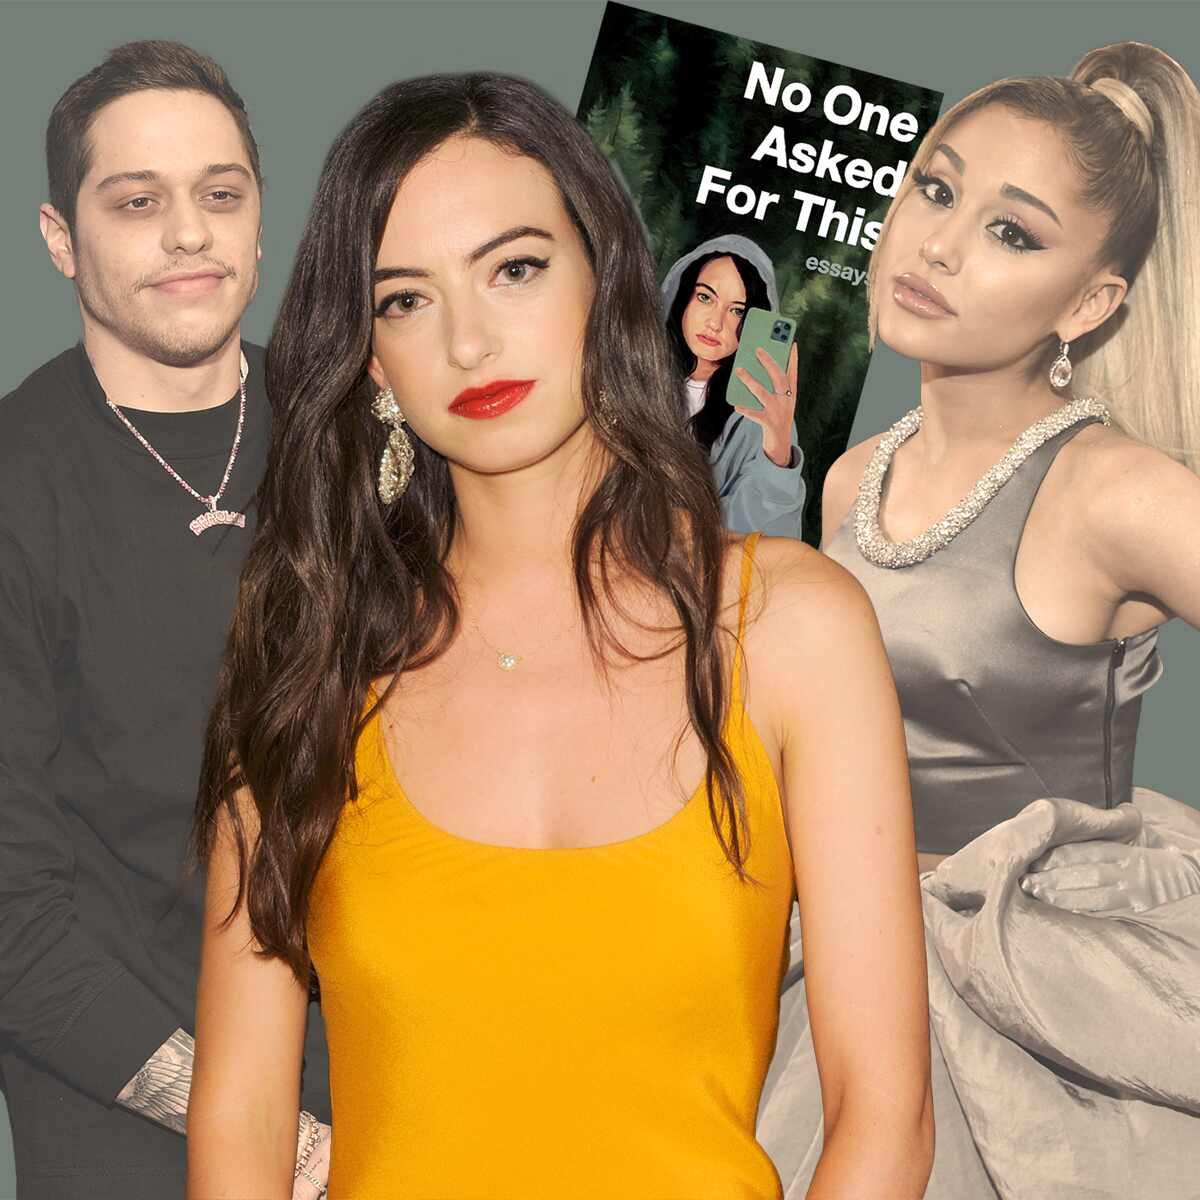 Cazzie David, No One Asked For This, Pete Davidson, Ariana Grande